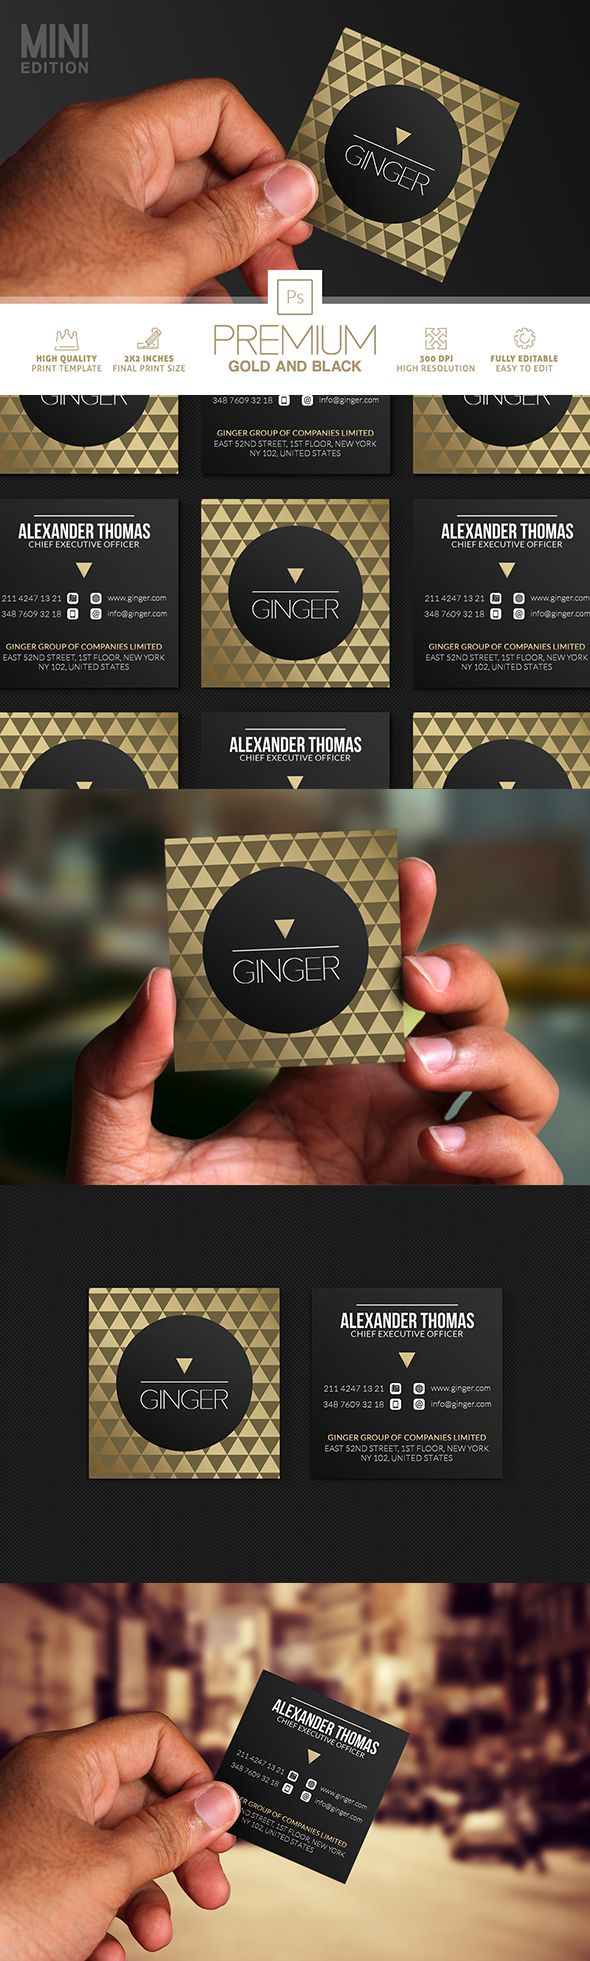 11 best Catering Service / Private Chef Business Cards images on ...